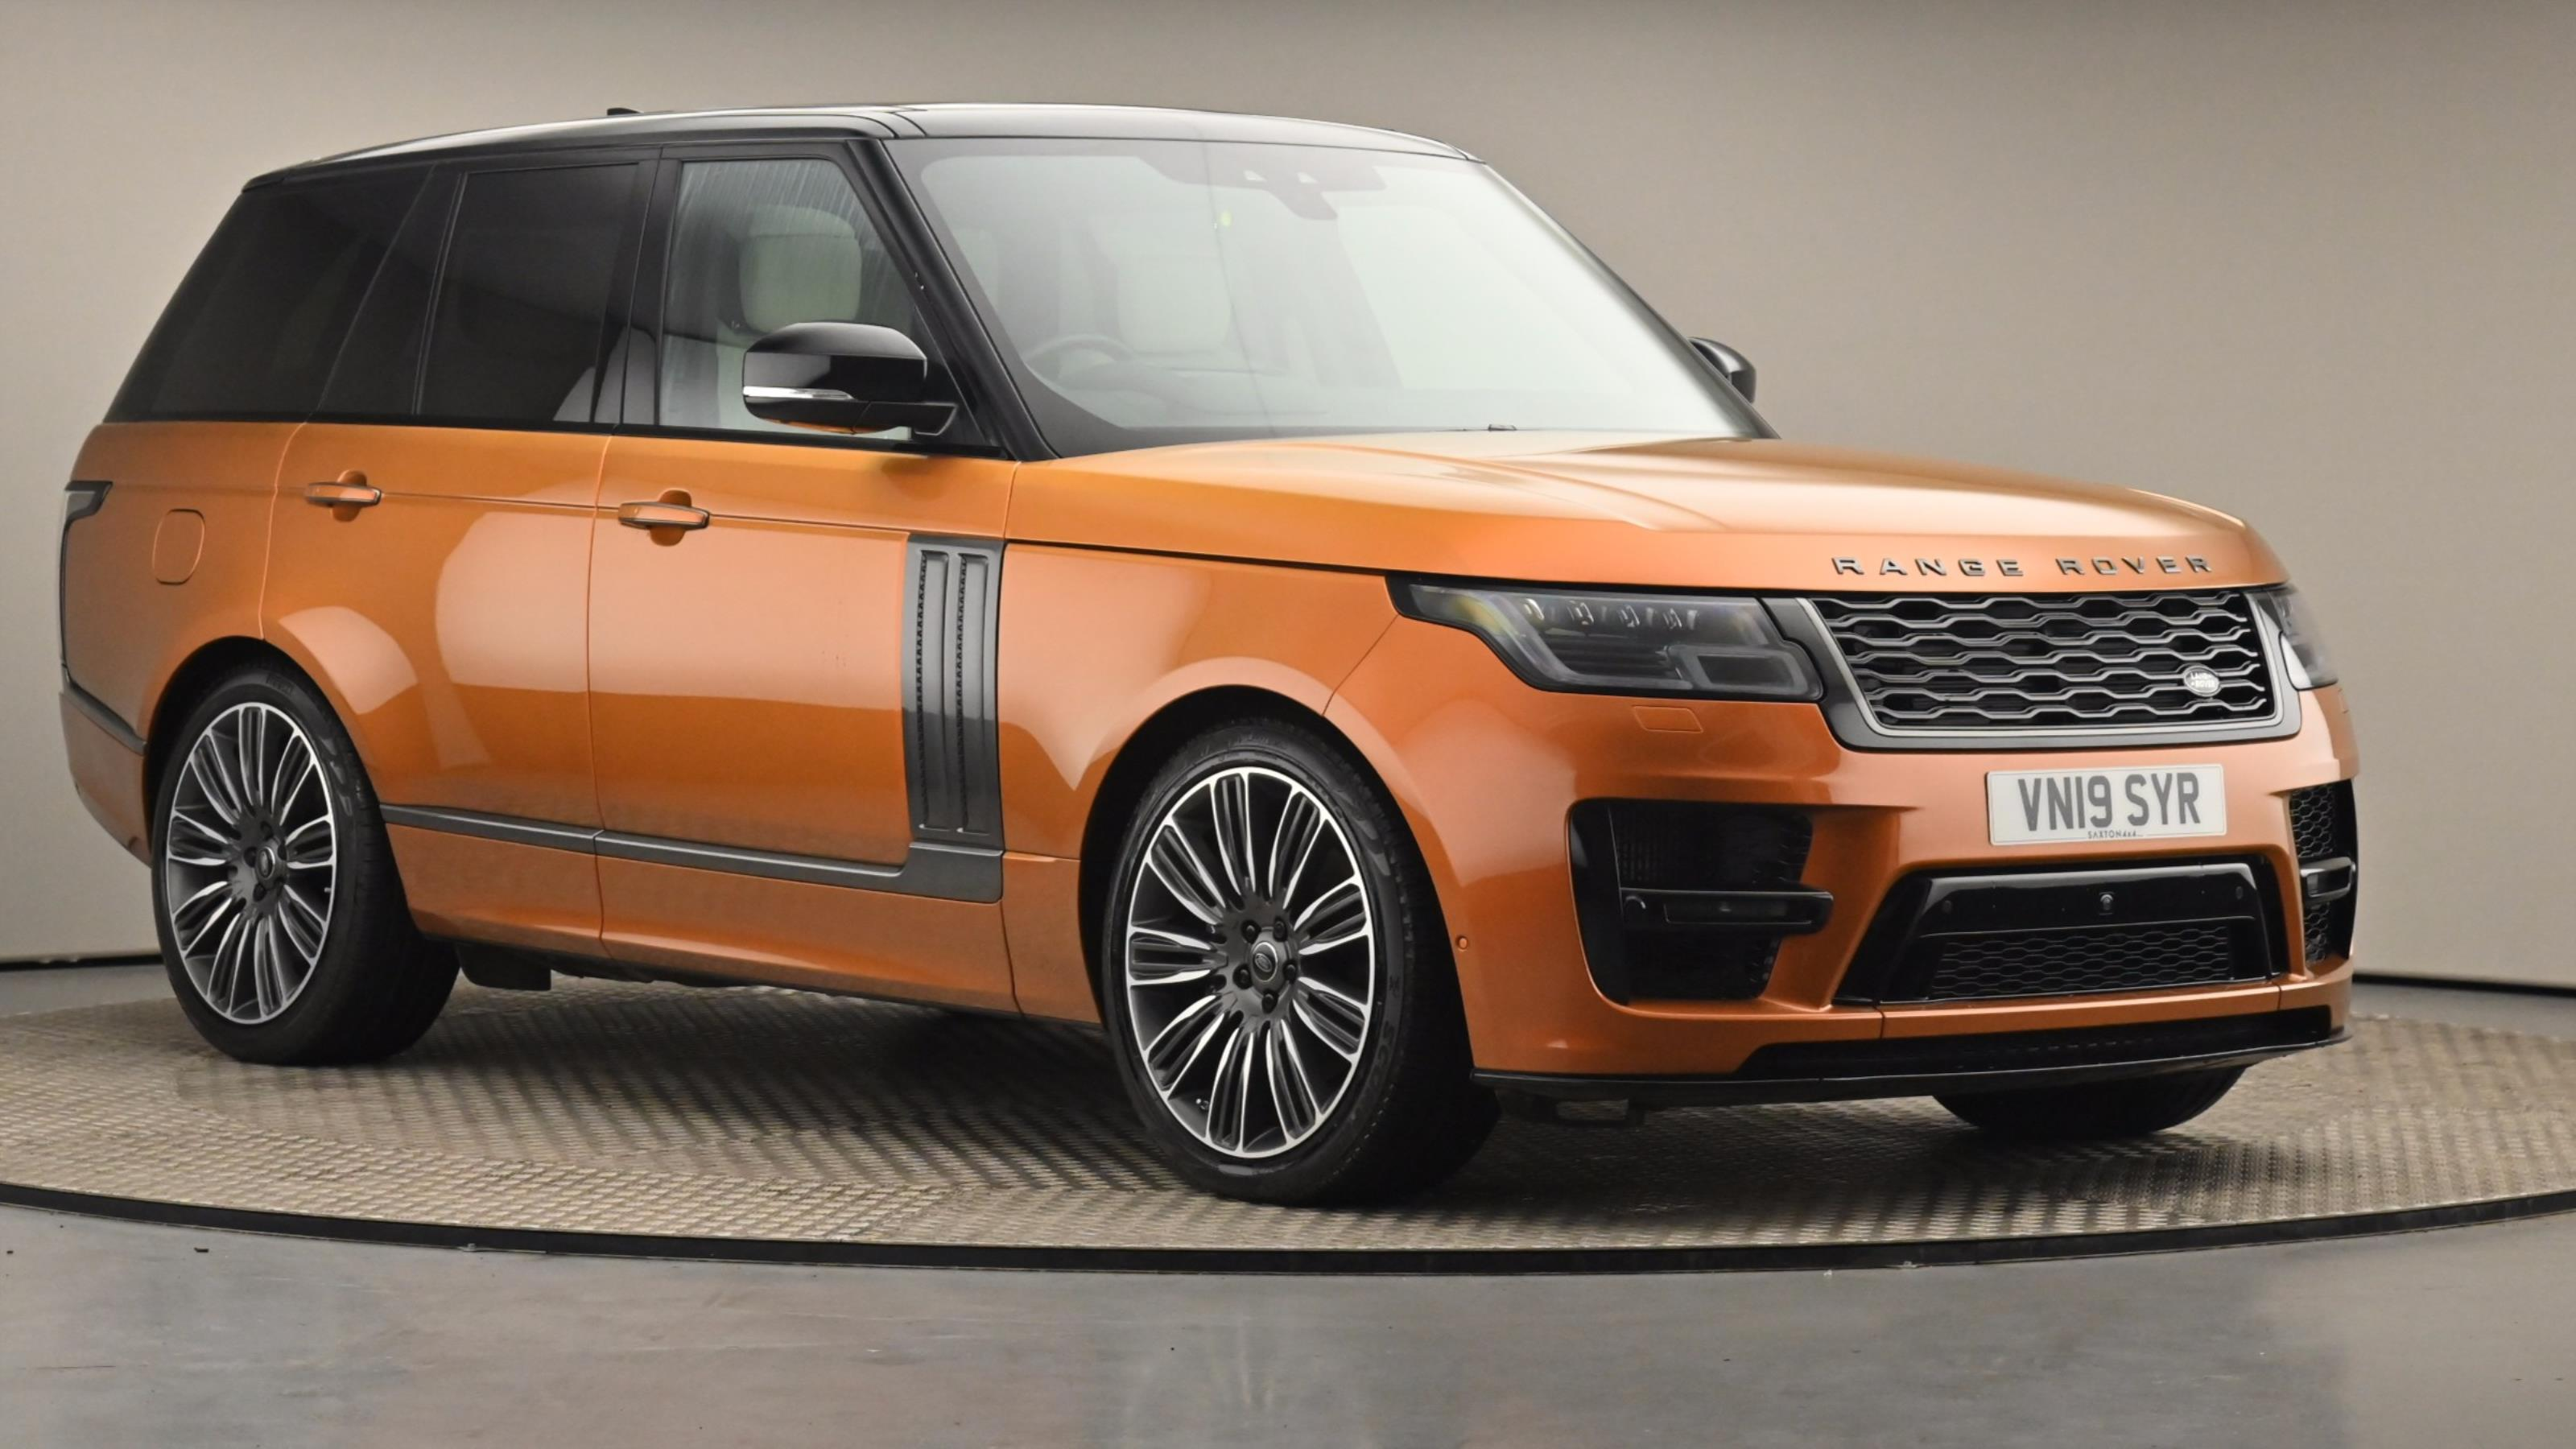 Used 2019 Land Rover RANGE ROVER 4.4 SDV8 Autobiography 4dr Auto at Saxton4x4